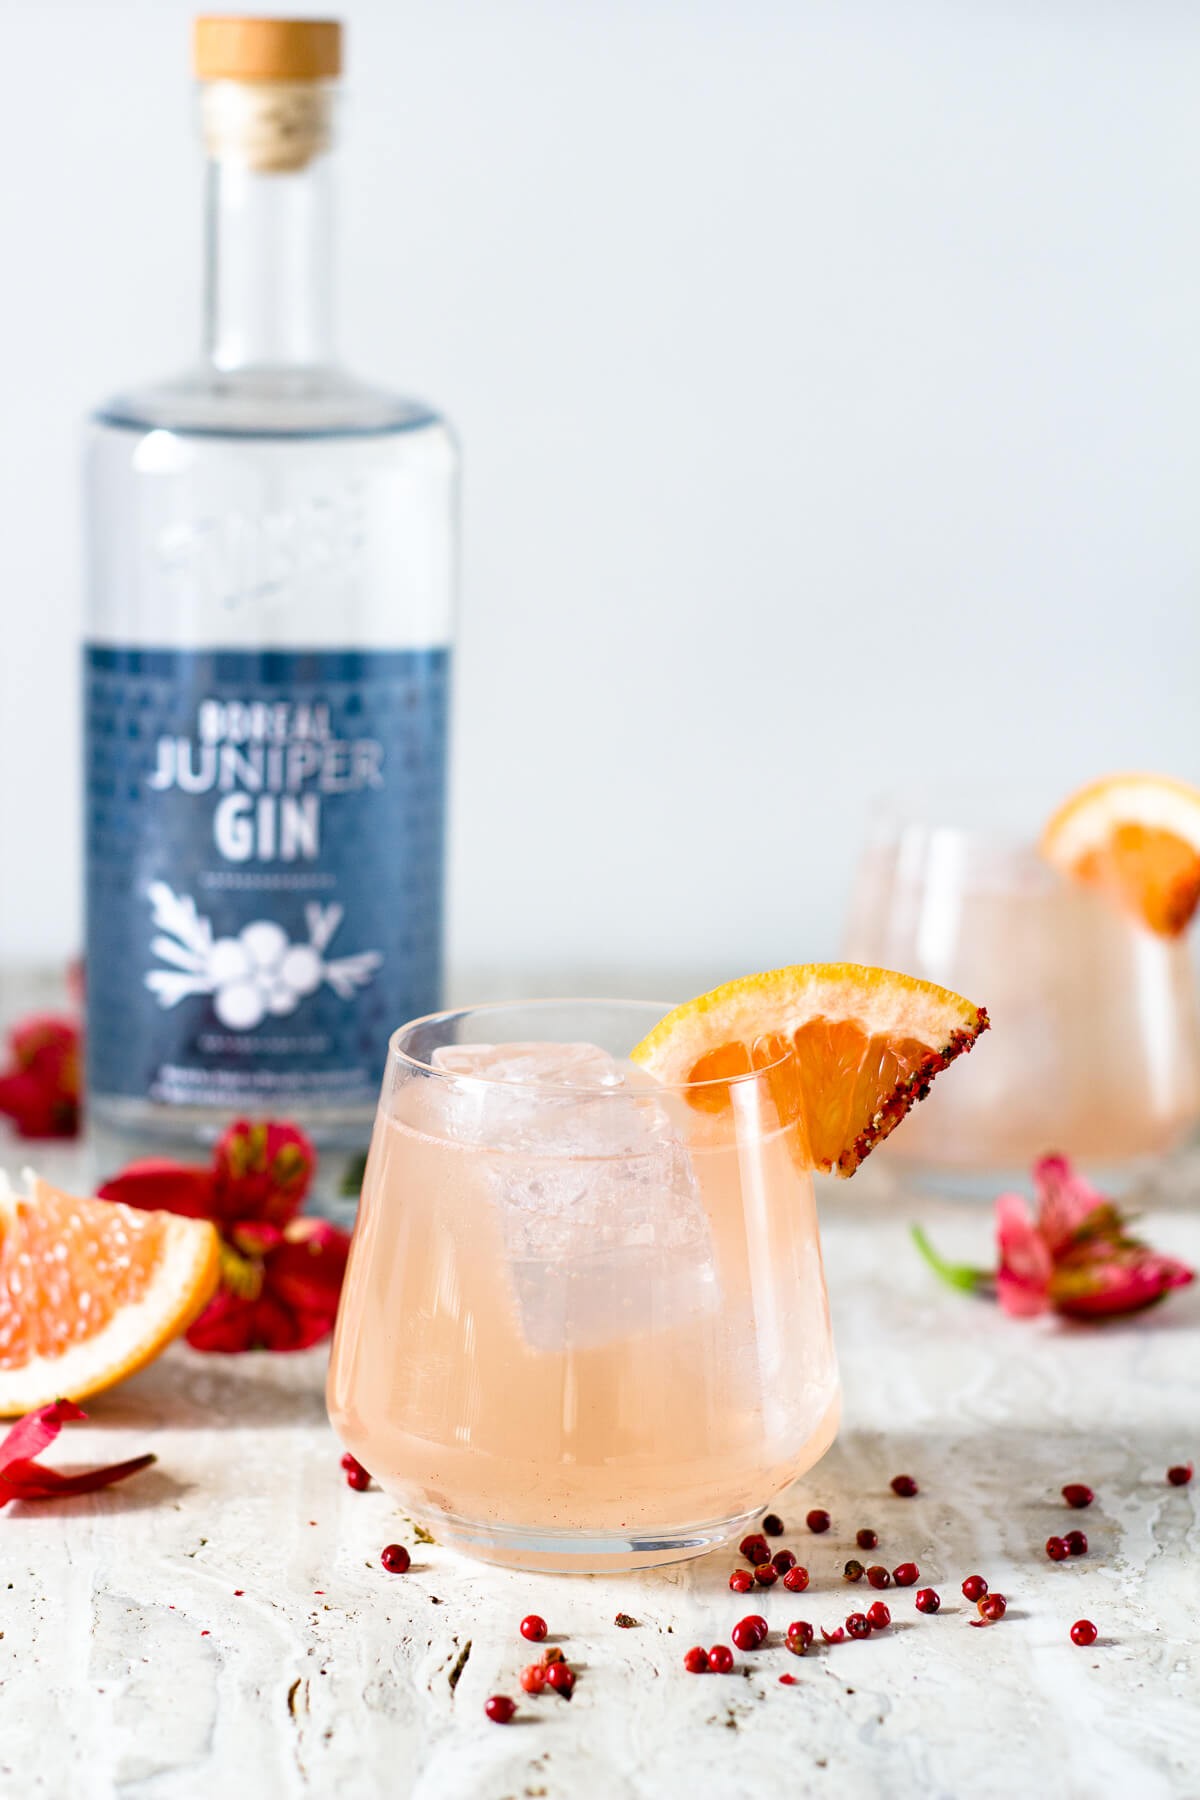 Whether sipped by the beach or on a porch this Grapefruit Pink Peppercorn Gin & Tonic is the most refreshing summer cocktail you'll ever have. Made with freshly squeezed grapefruit juice, pink peppercorn simple syrup, tonic water, and our favorite hand-crafted gin from Vikre Distillery. Recipe at www.designsofanykind.com